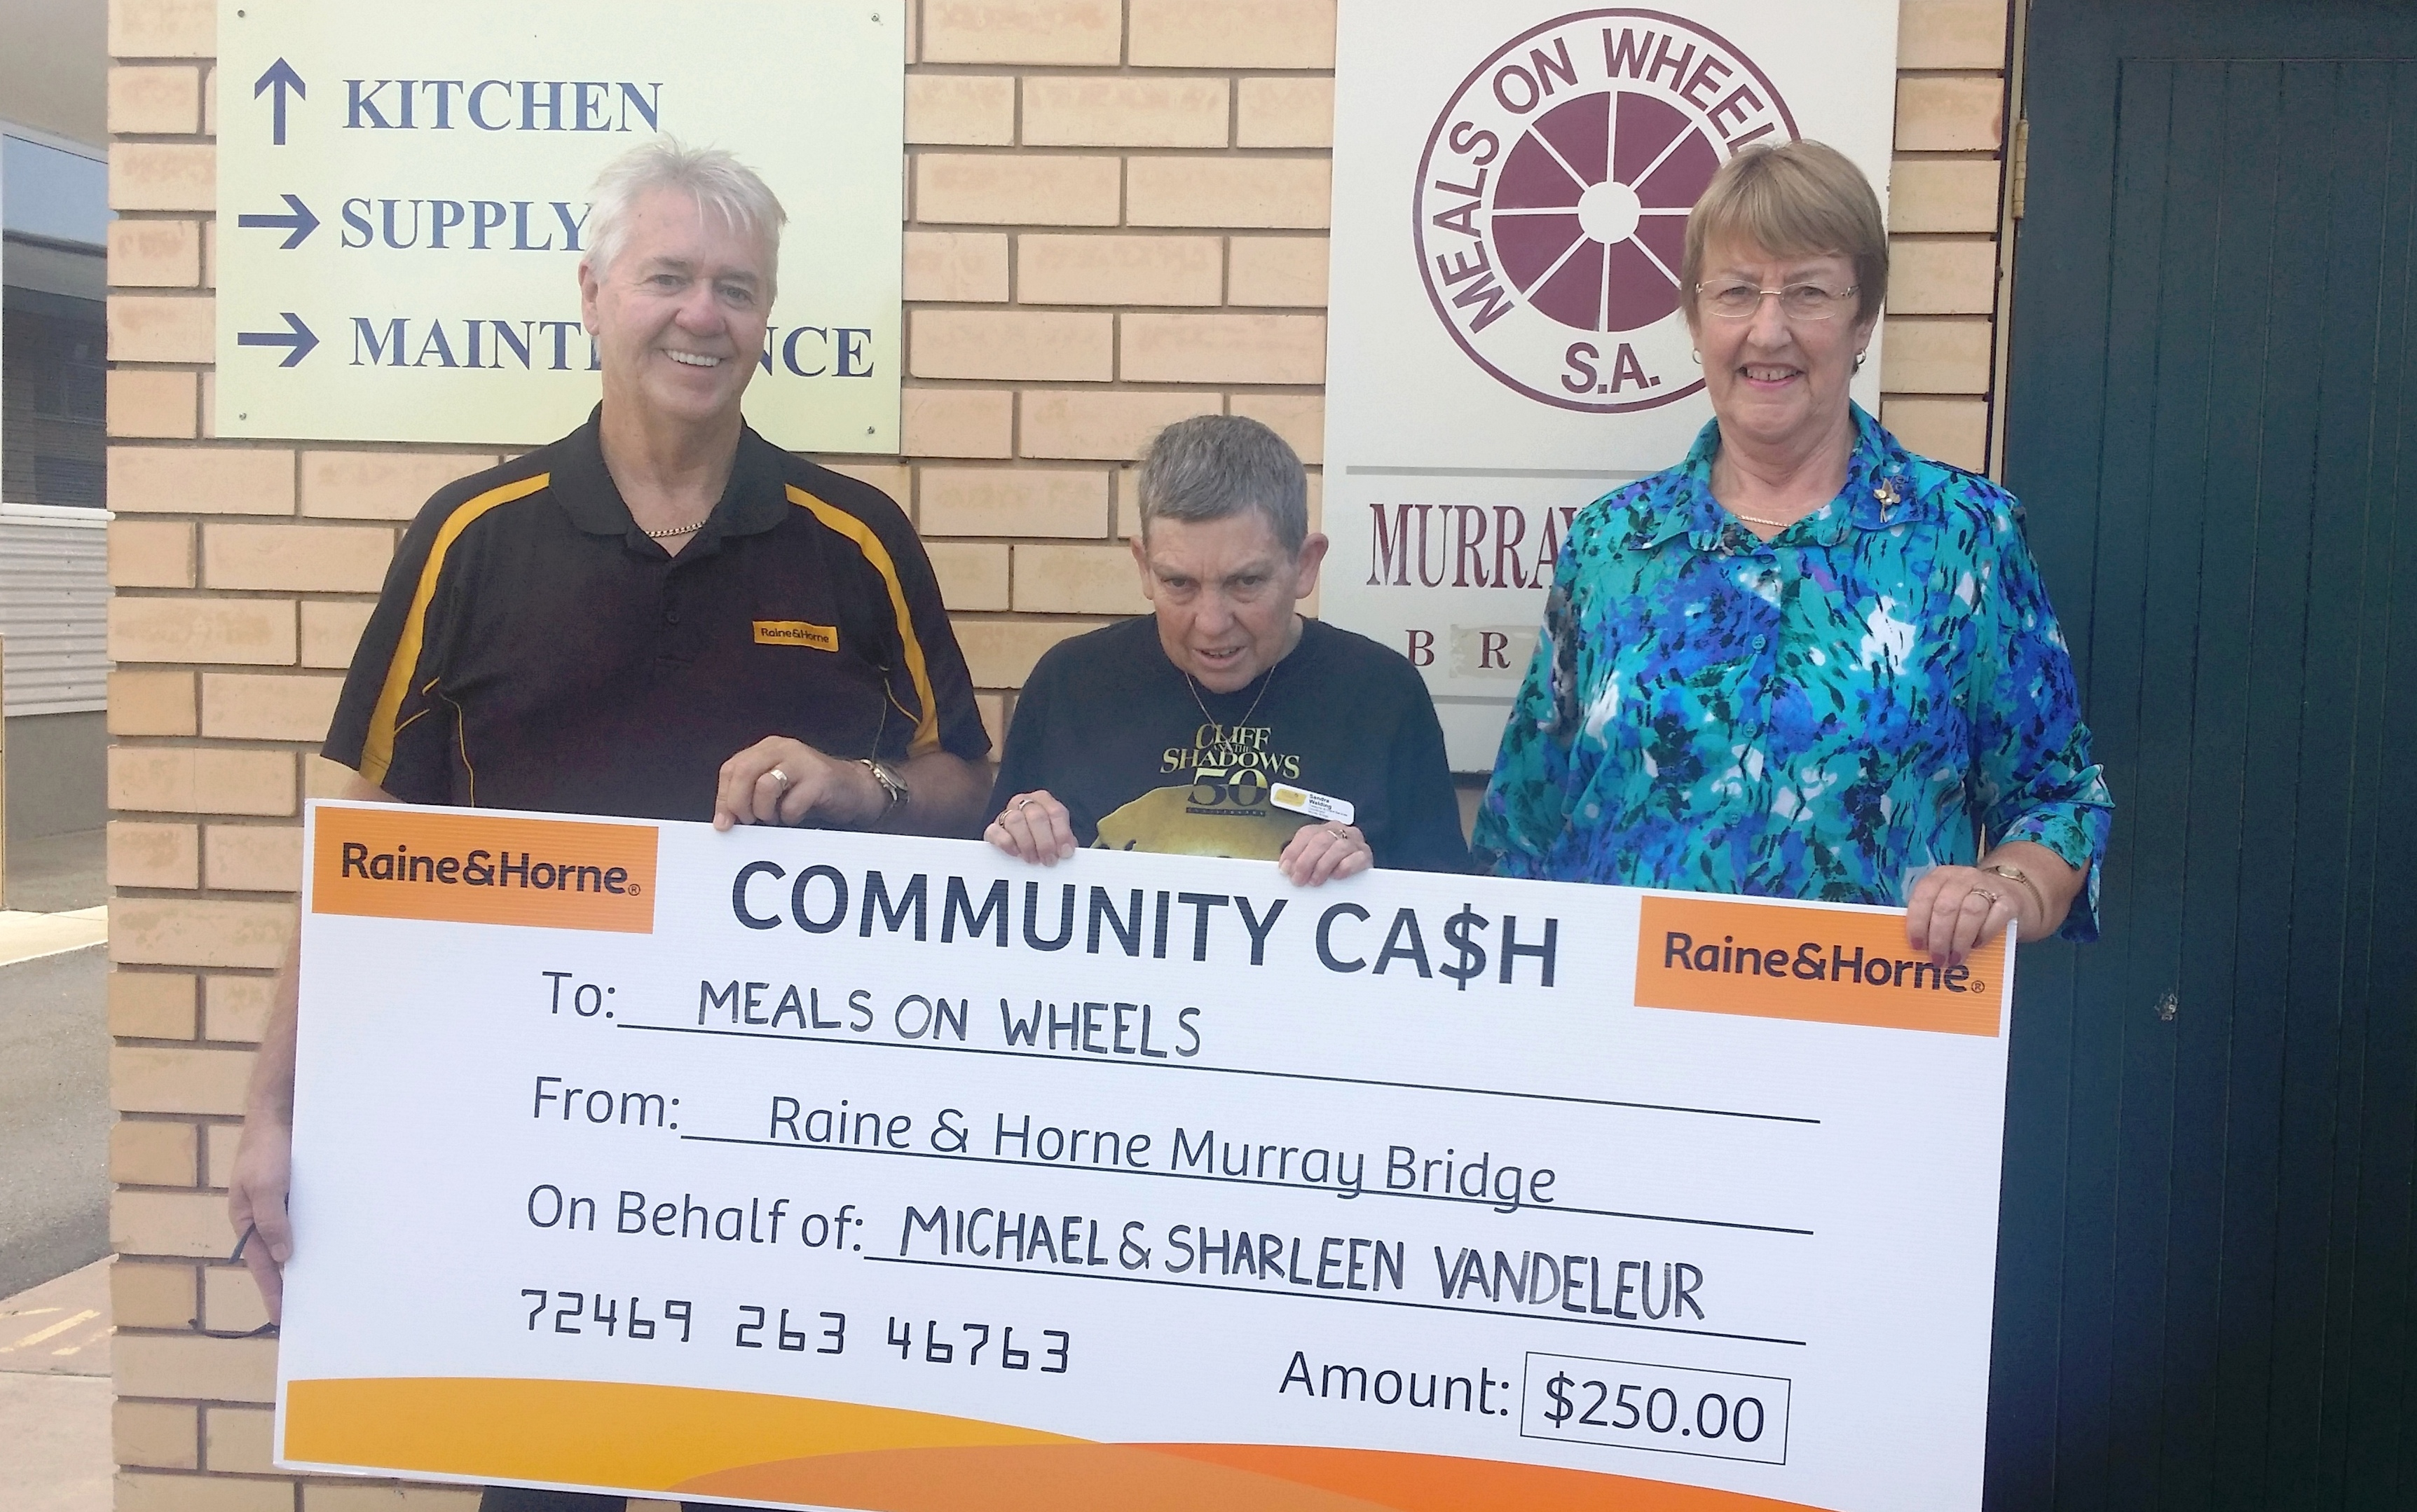 Geoff Muir of Raine and Horne Murray lands donating a cheque to Meals on Wheels